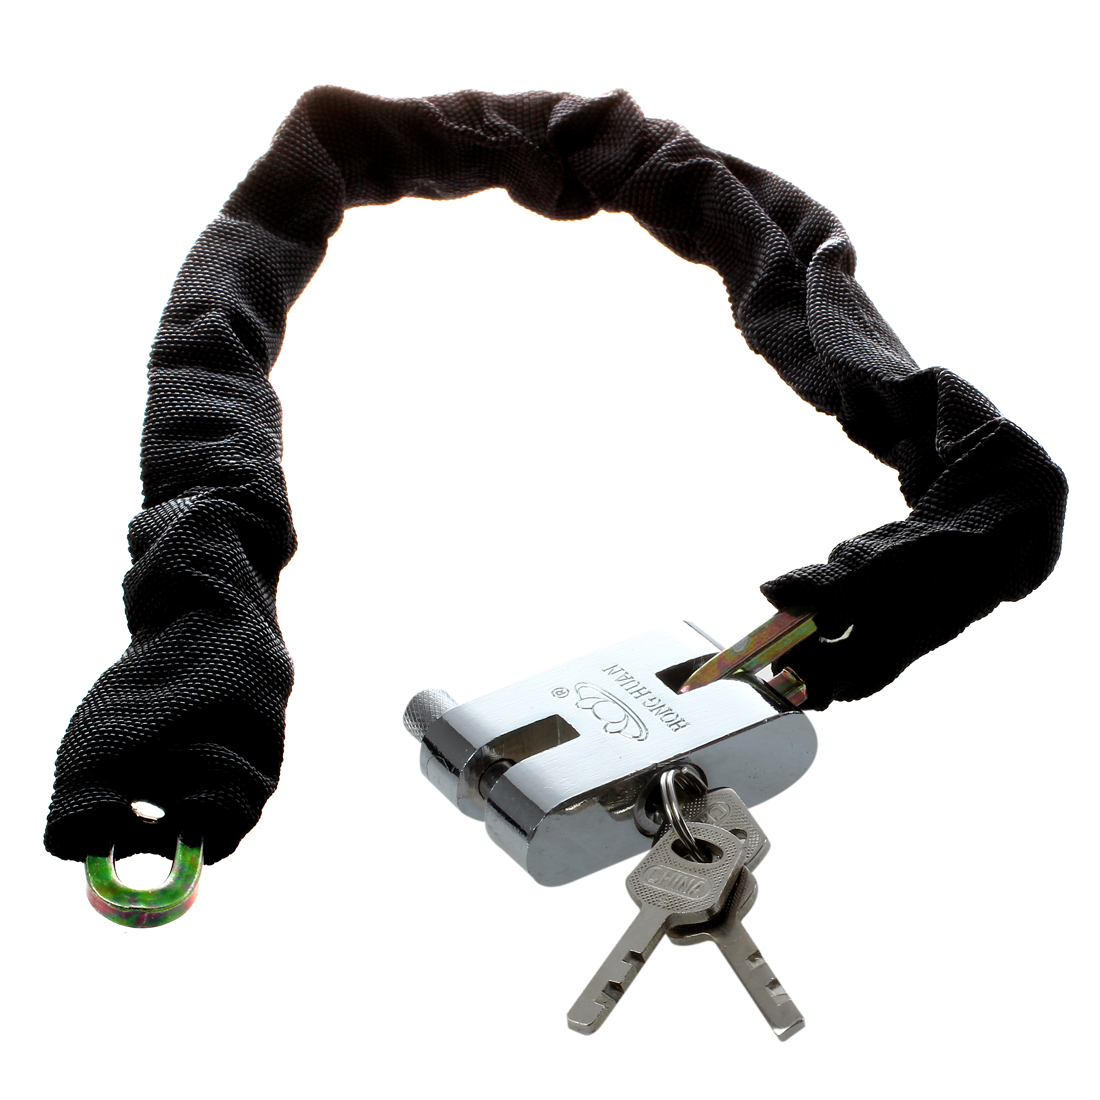 150cm Reinforced Metal Heavy Motorbike Motorcycle Bicycle Chain Lock in Bicycle Lock from Sports Entertainment